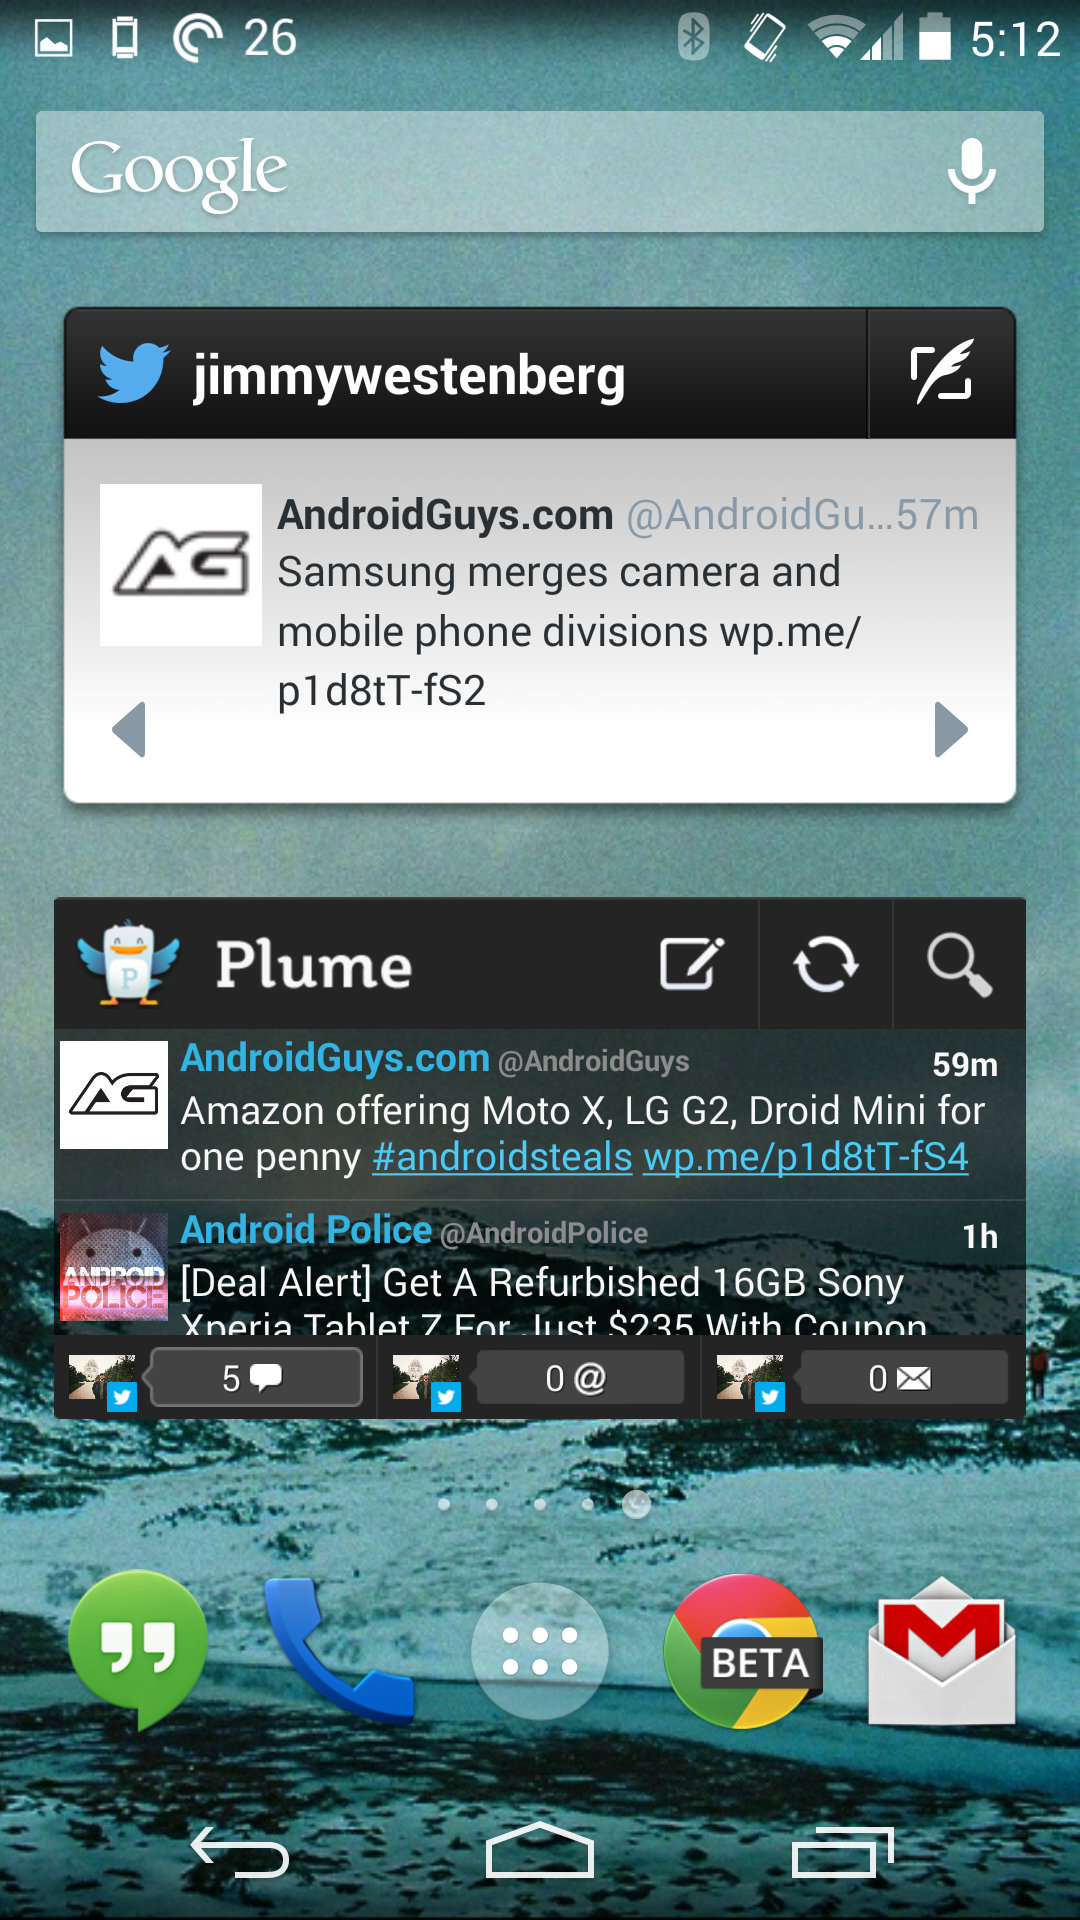 Twitter and Plume Widgets